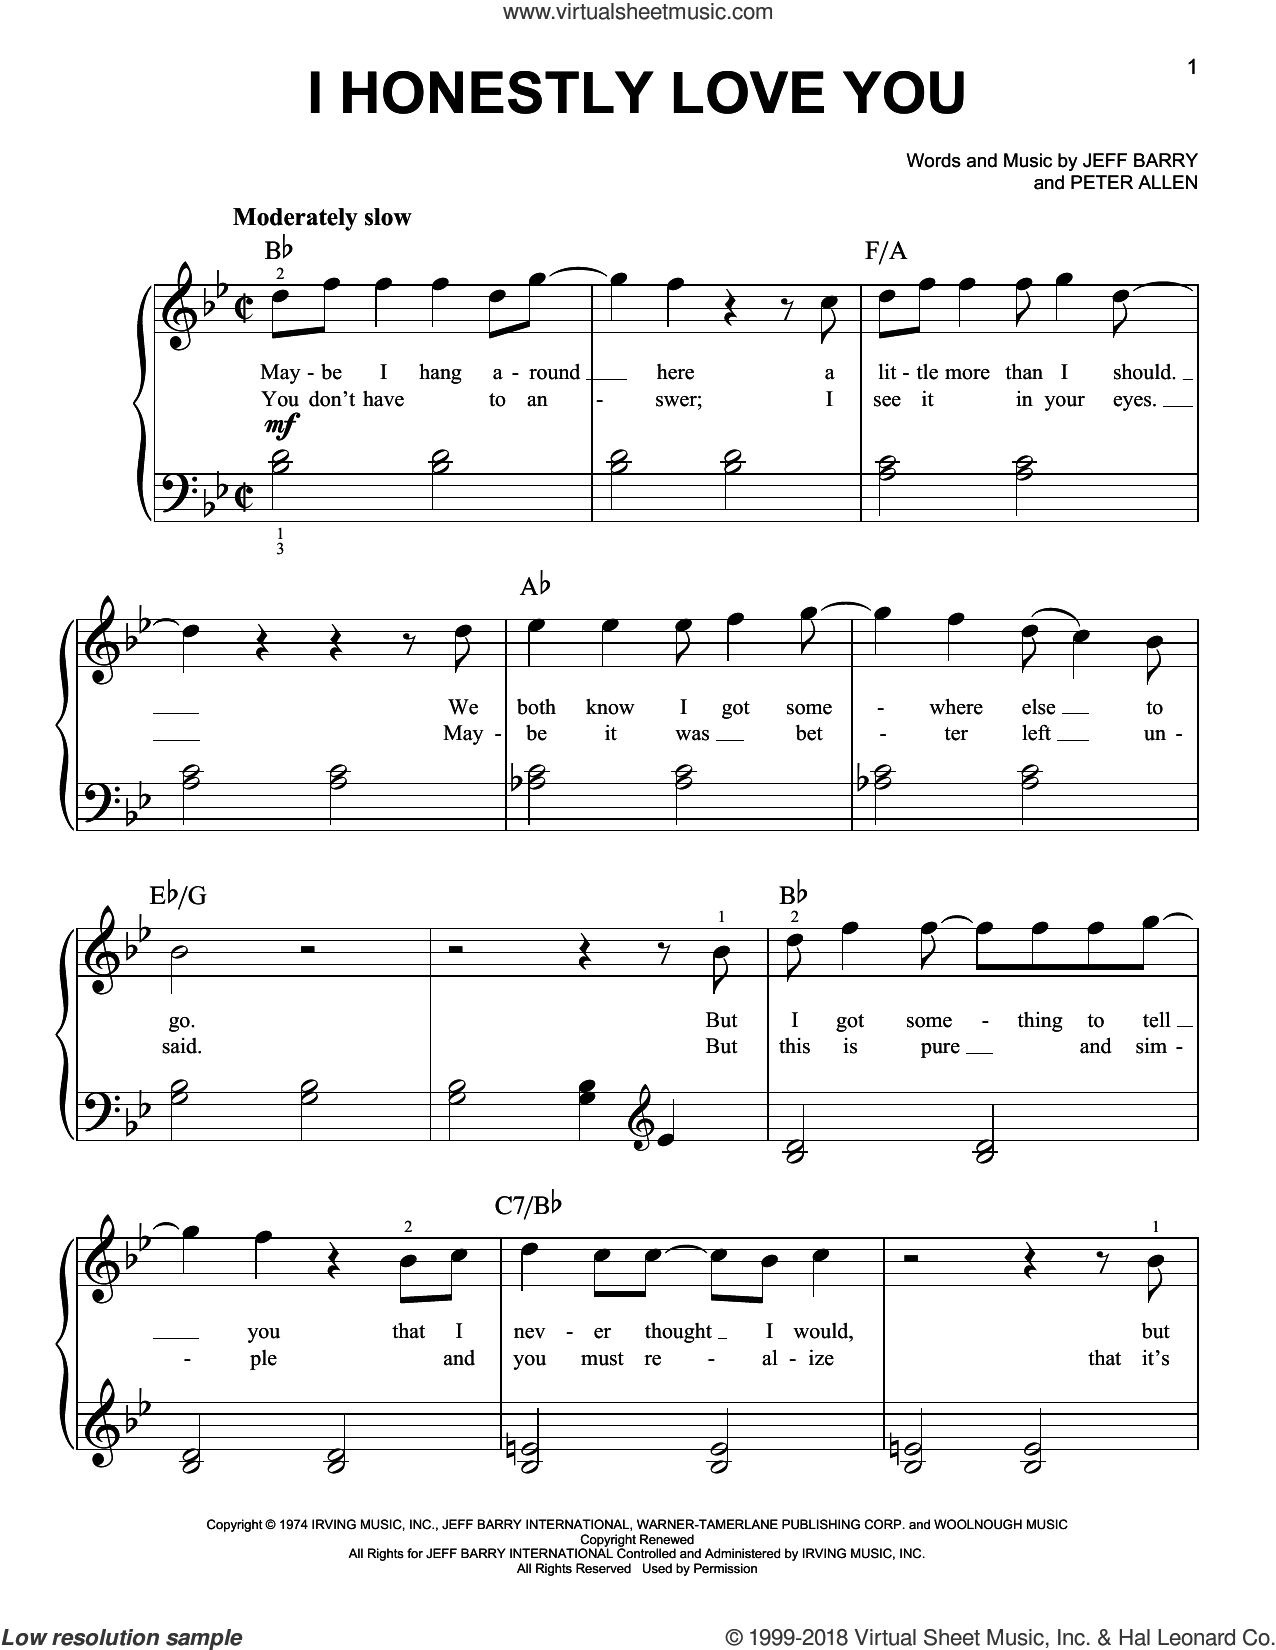 I Honestly Love You sheet music for piano solo by Olivia Newton-John, Jeff Barry and Peter Allen, beginner skill level